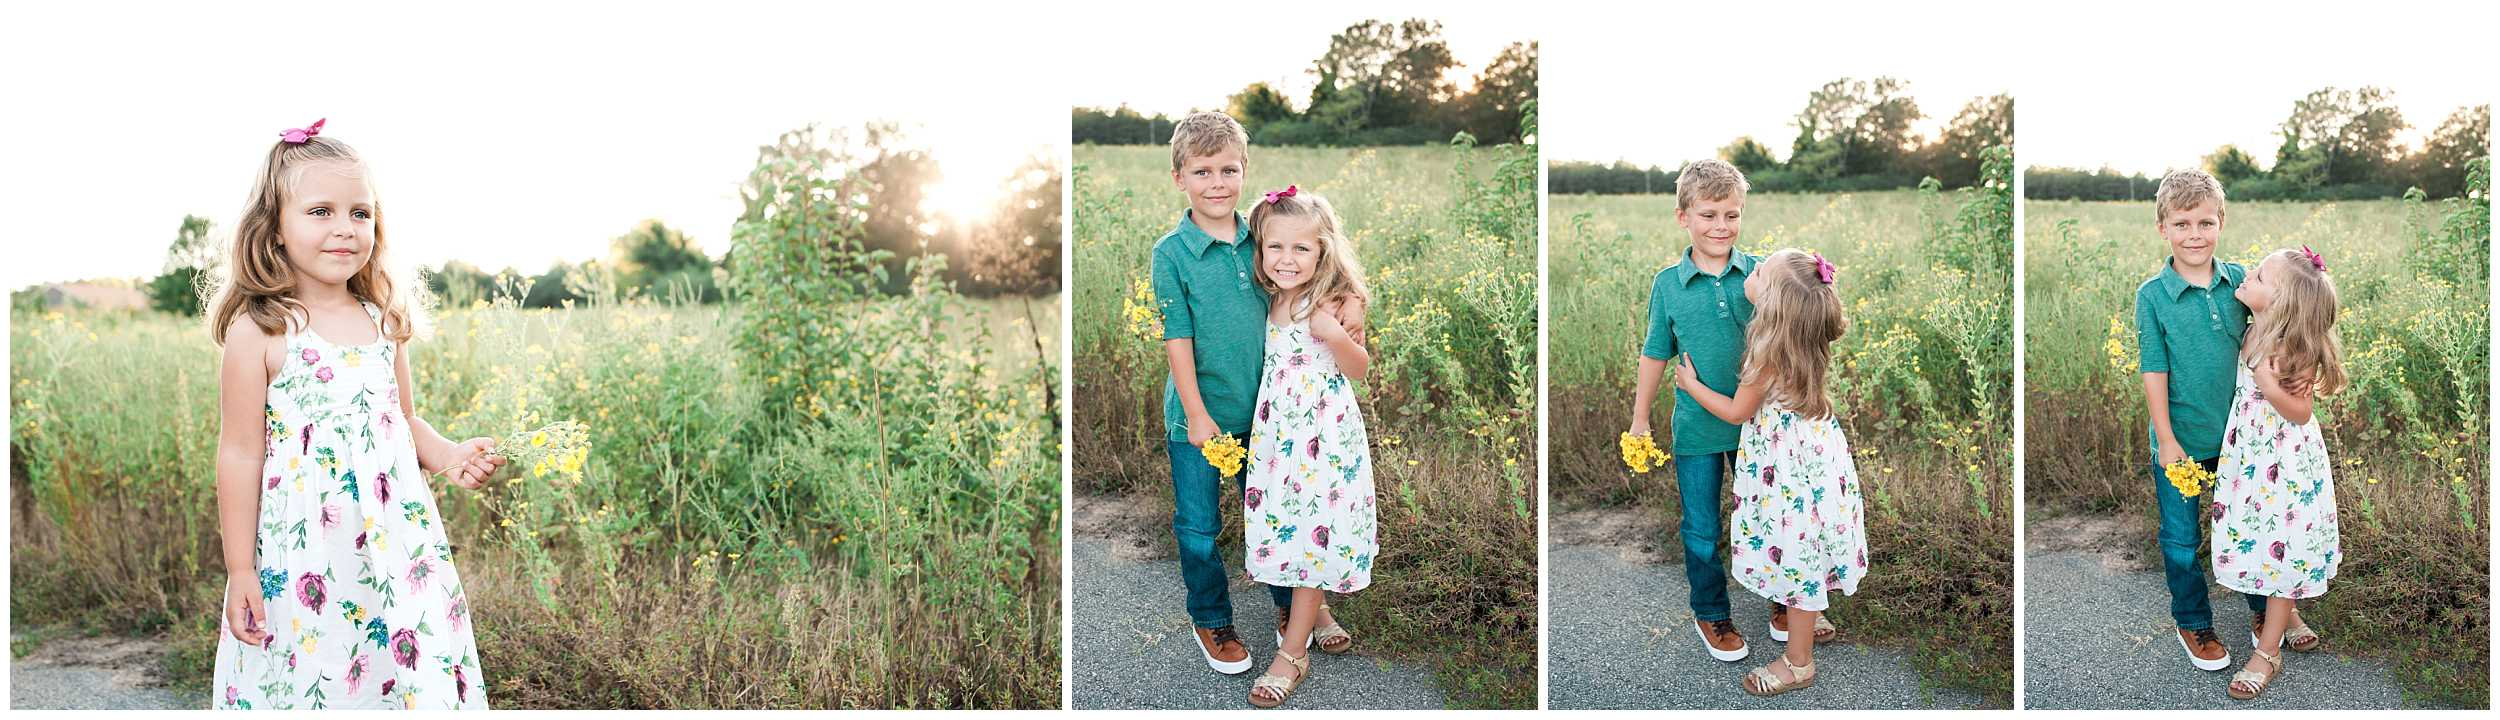 Greenville childrens photographer